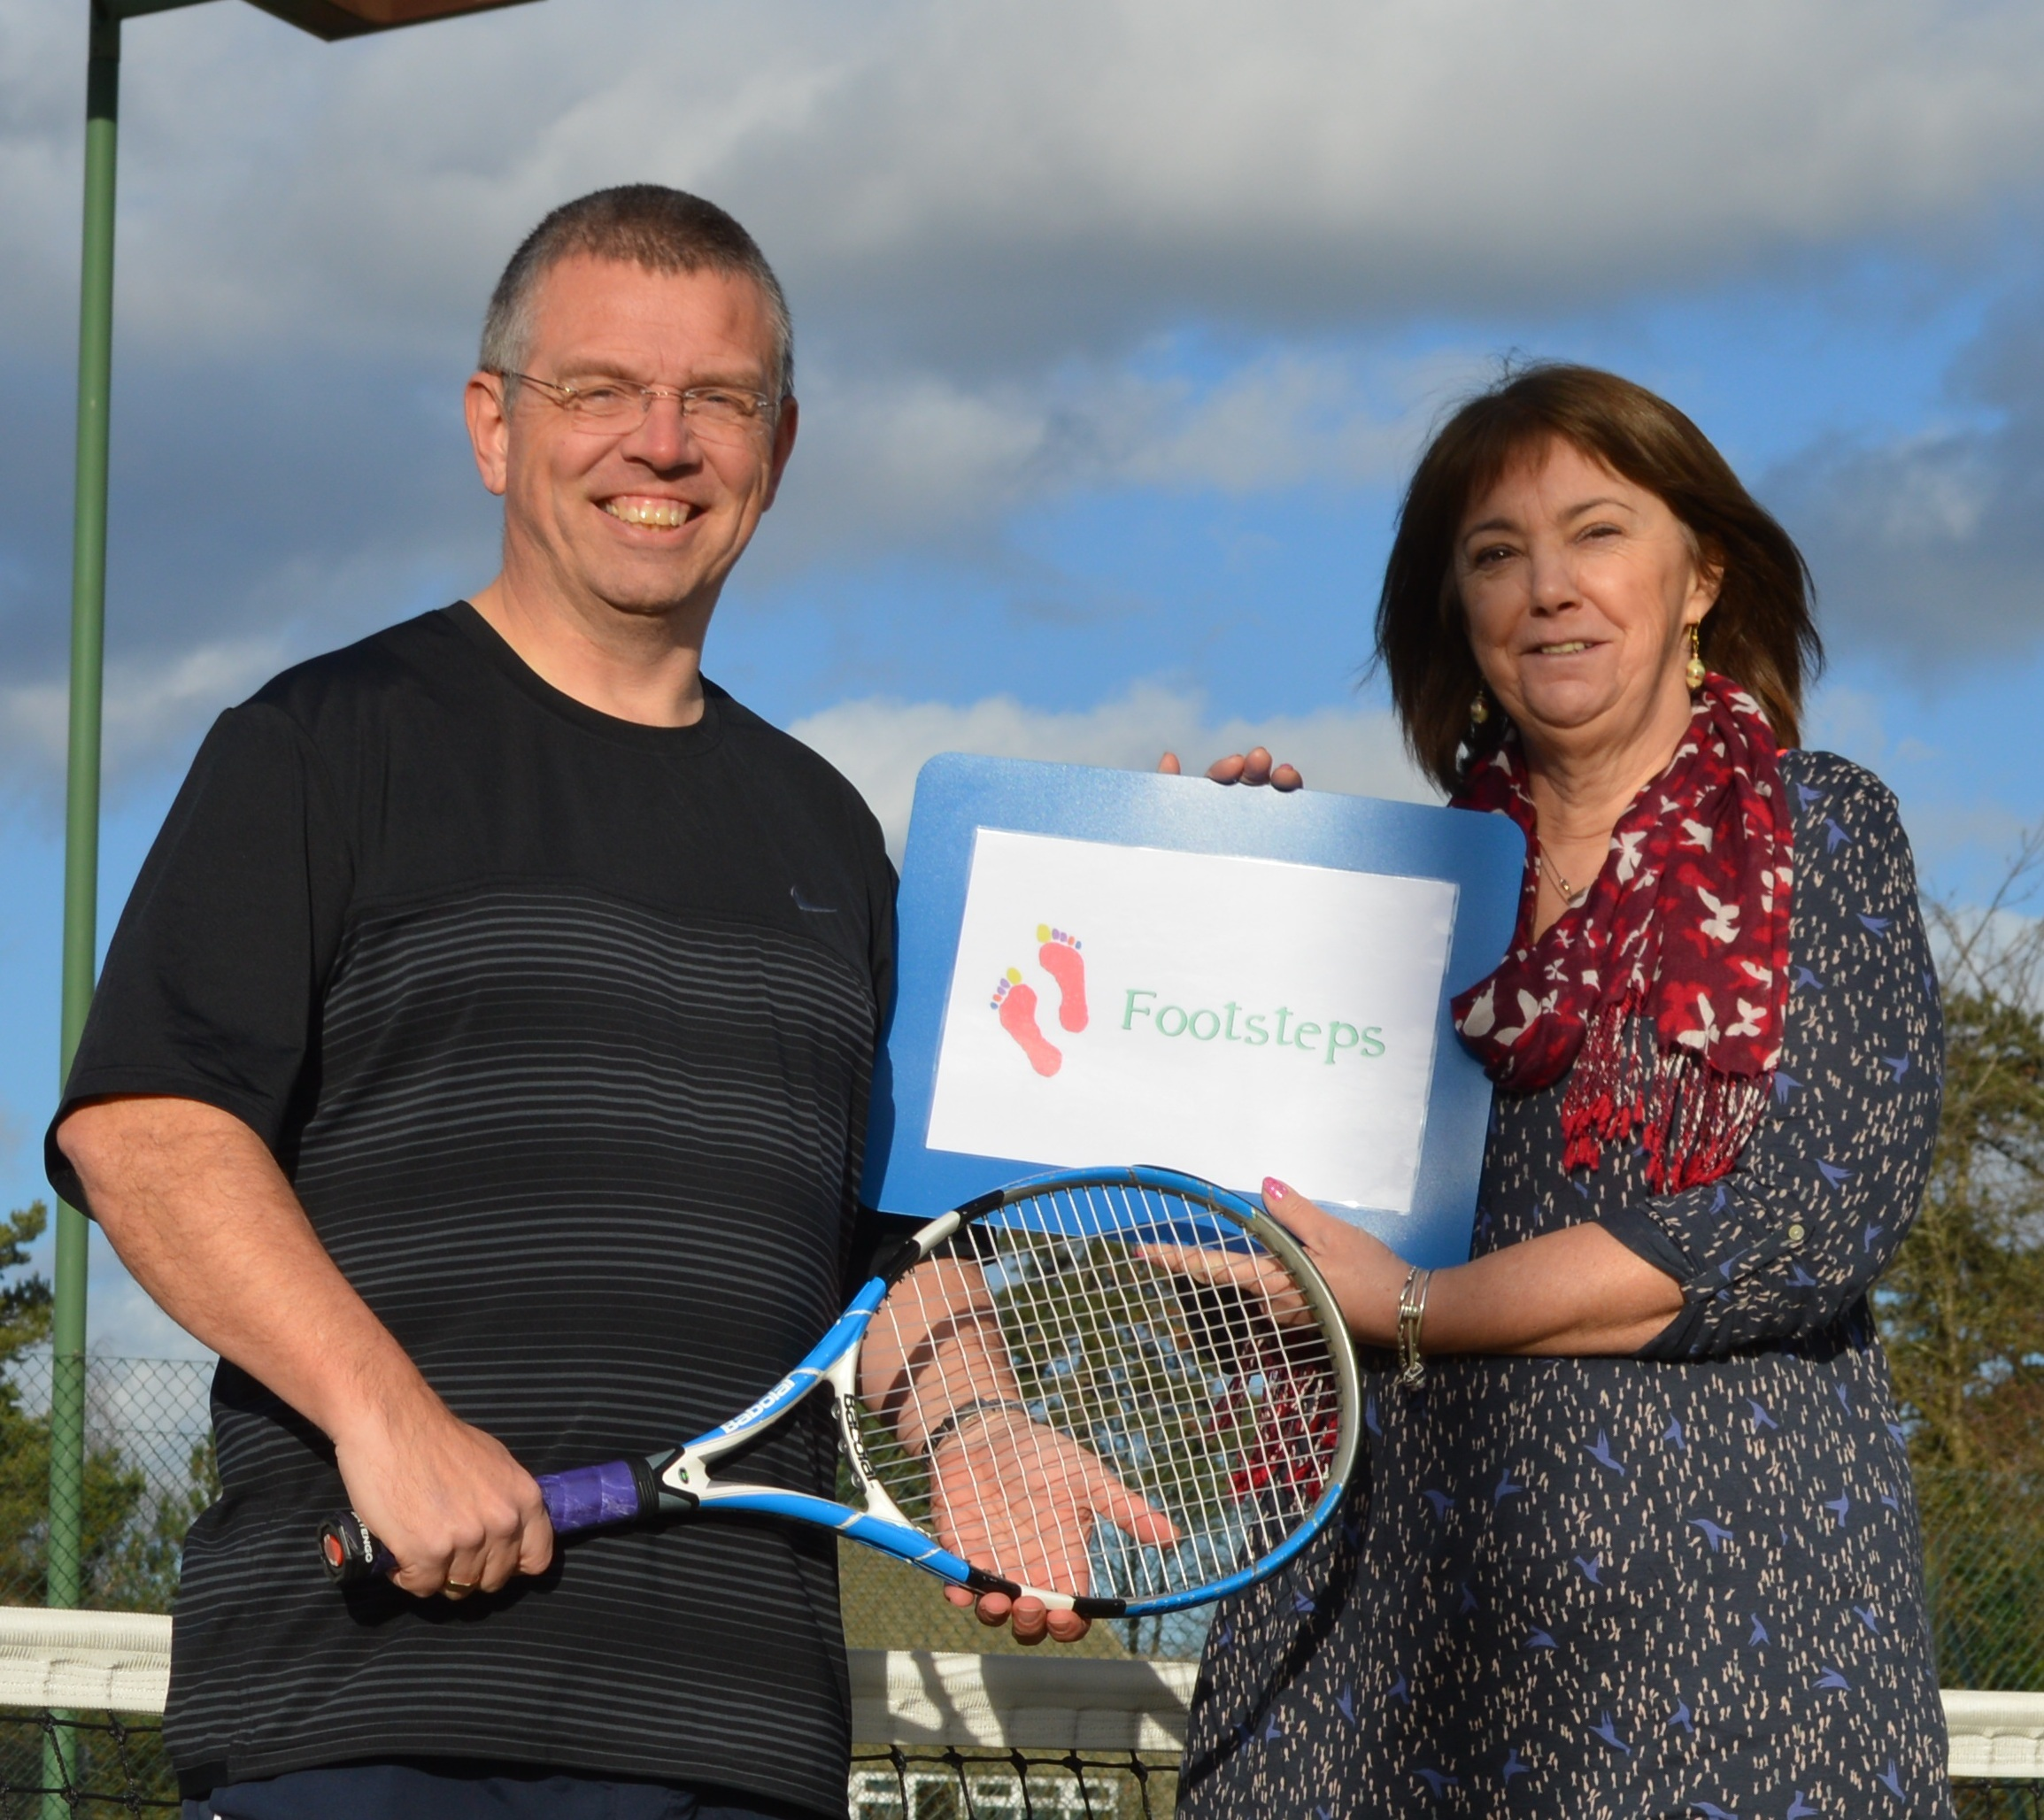 Neil Bates from Droitwich Tennis Club and Susan Smith from Footsteps